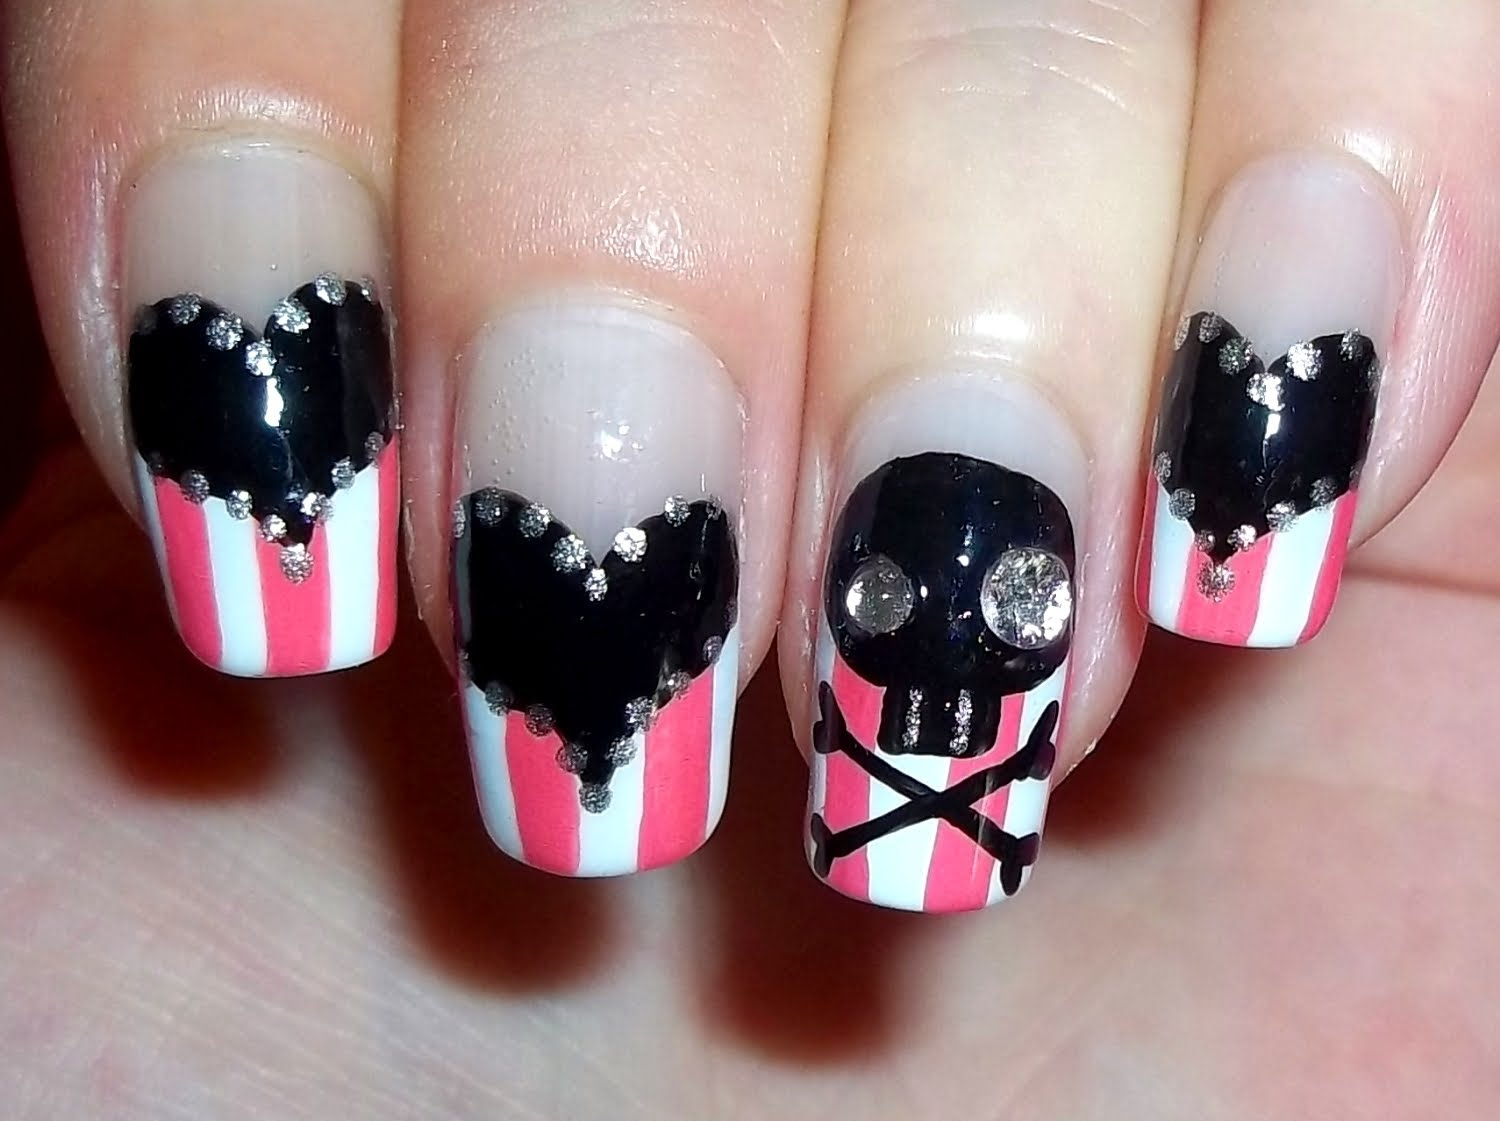 Black Heart And Skull Design Pirate Nail Art